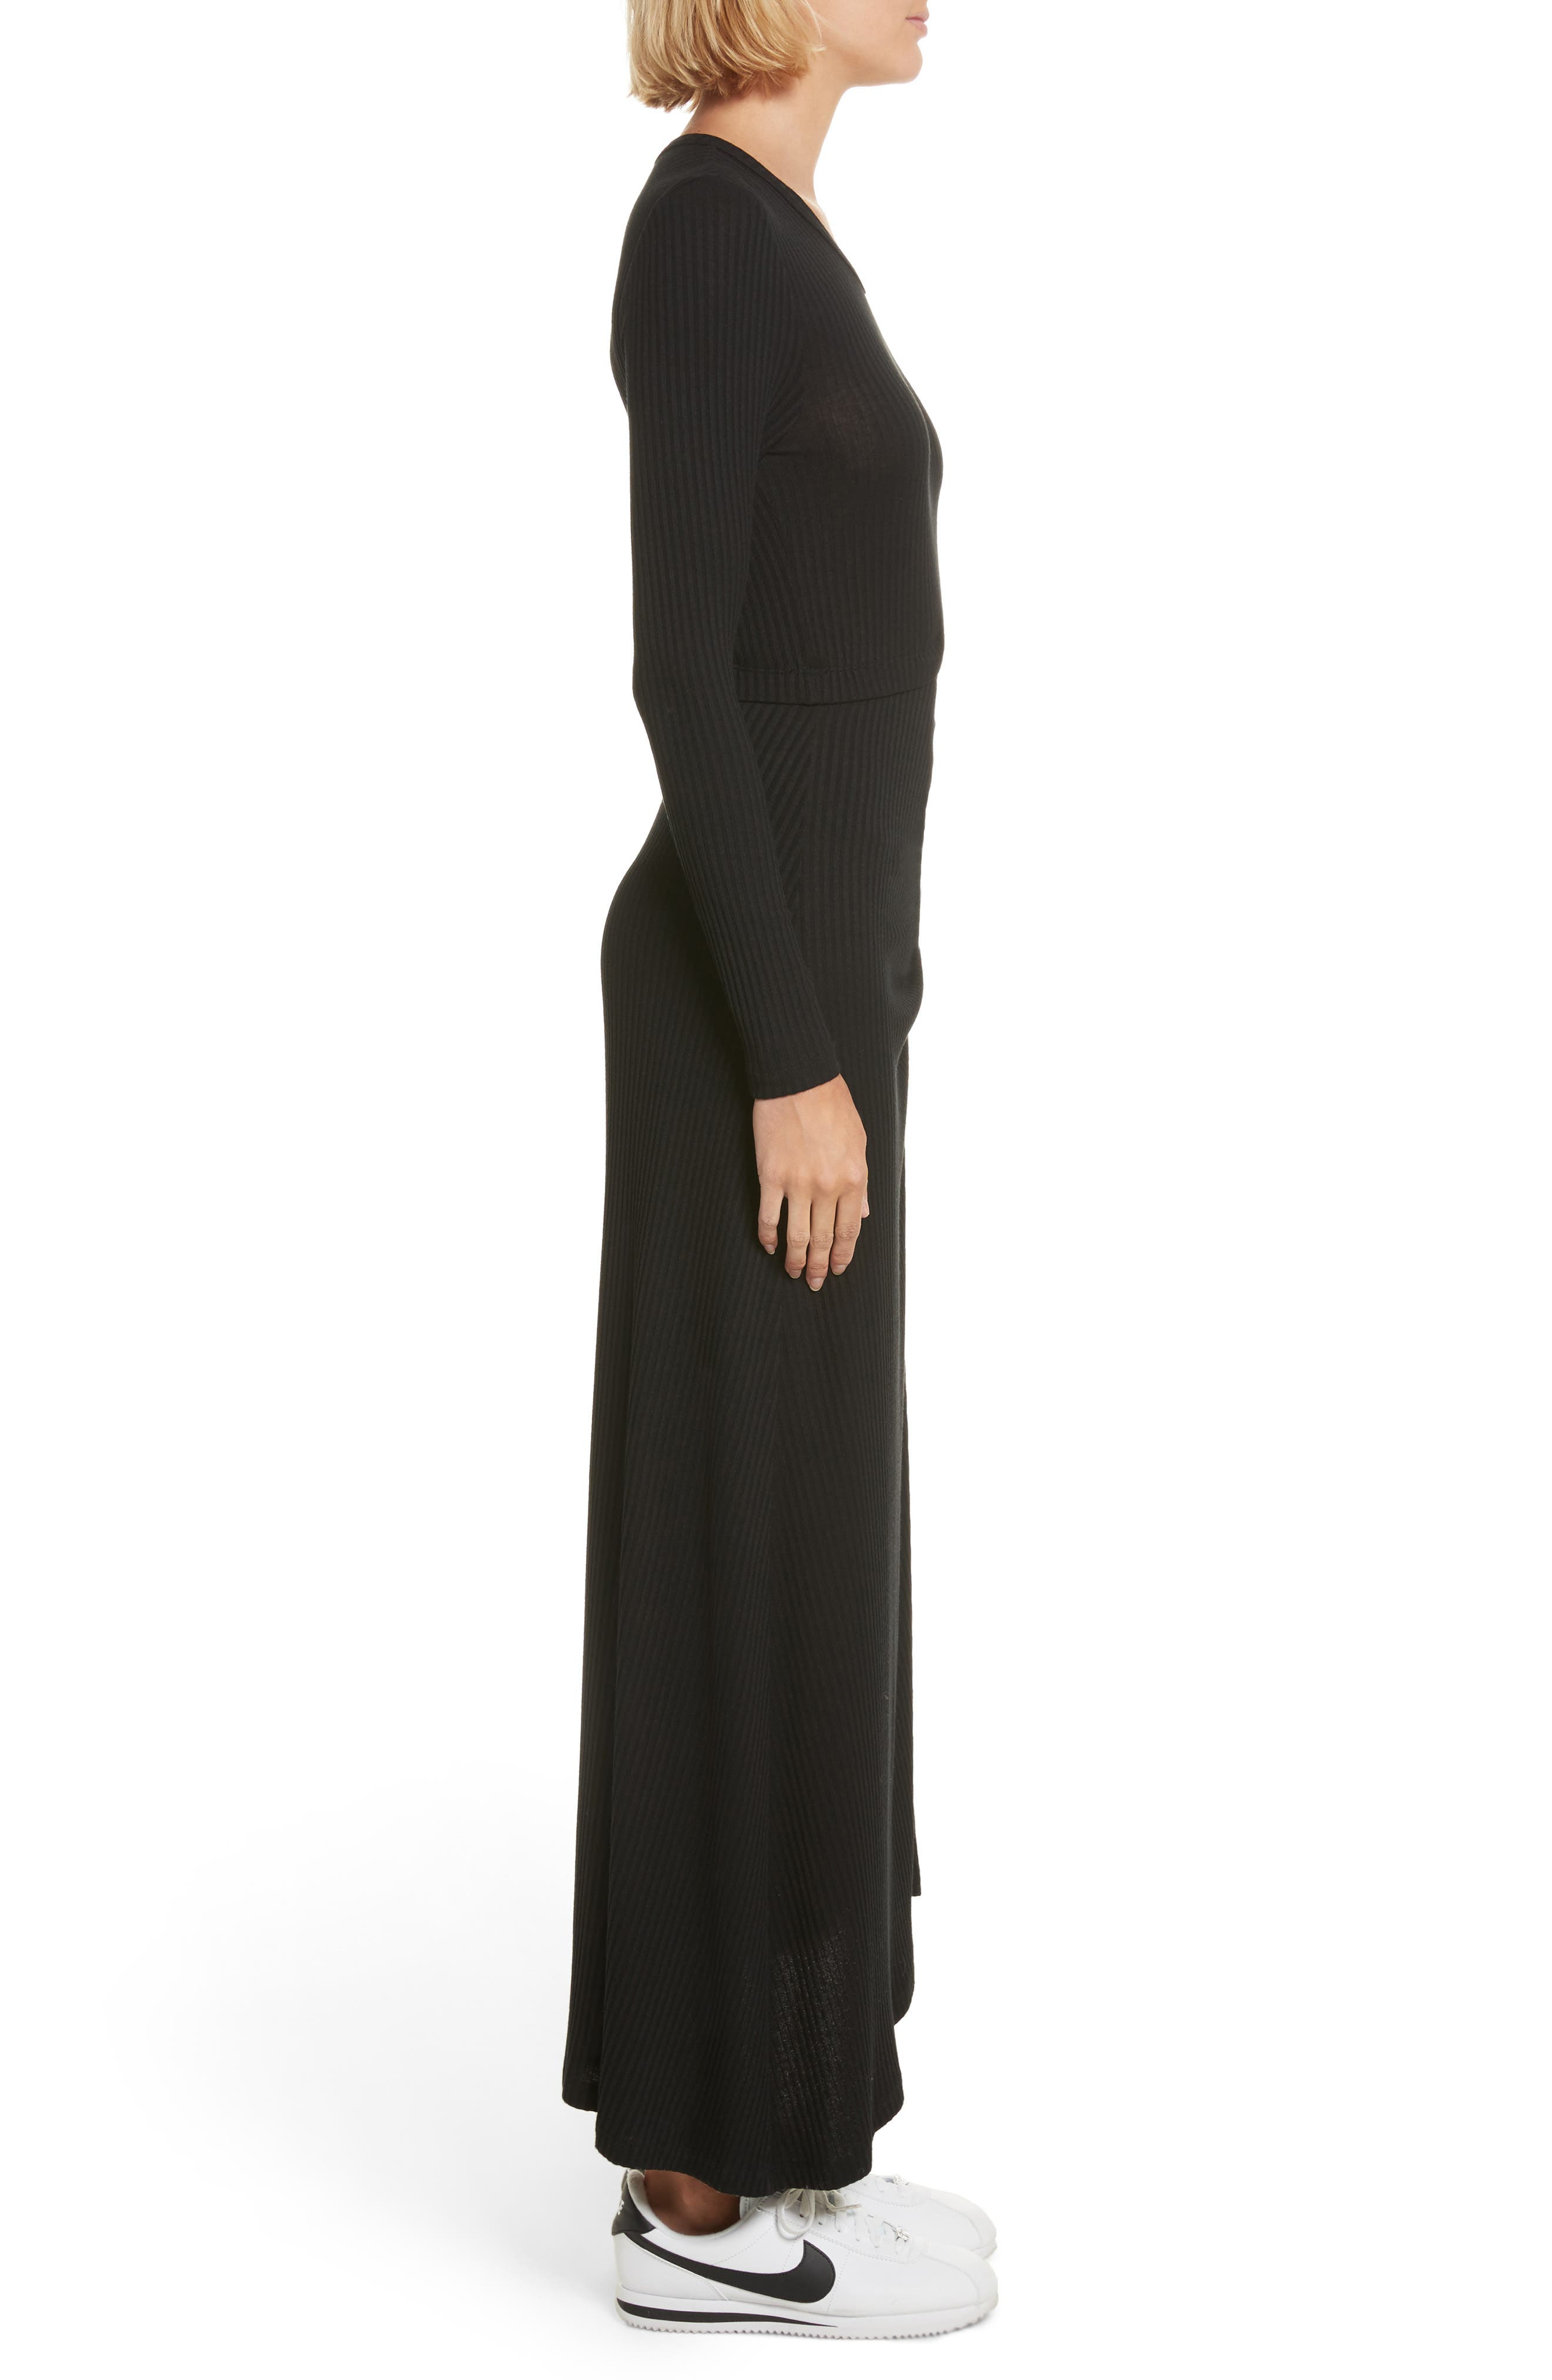 Rooney Cutout Dress,                             Alternate thumbnail 3, color,